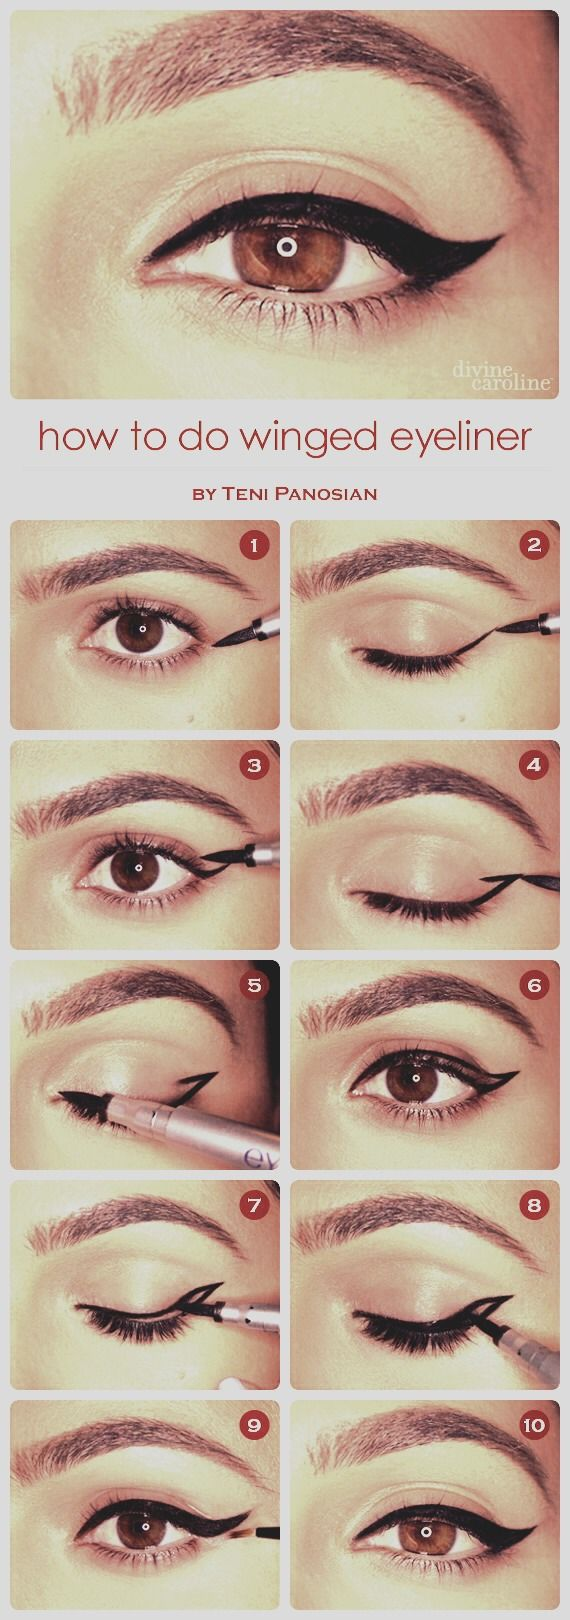 Winged Eyeliner: Where To StartWhen you wing out the liner, make sure to use a liquid eyeliner with a felt tip to do it. The wing should be heading in the direction of your eyebrow.